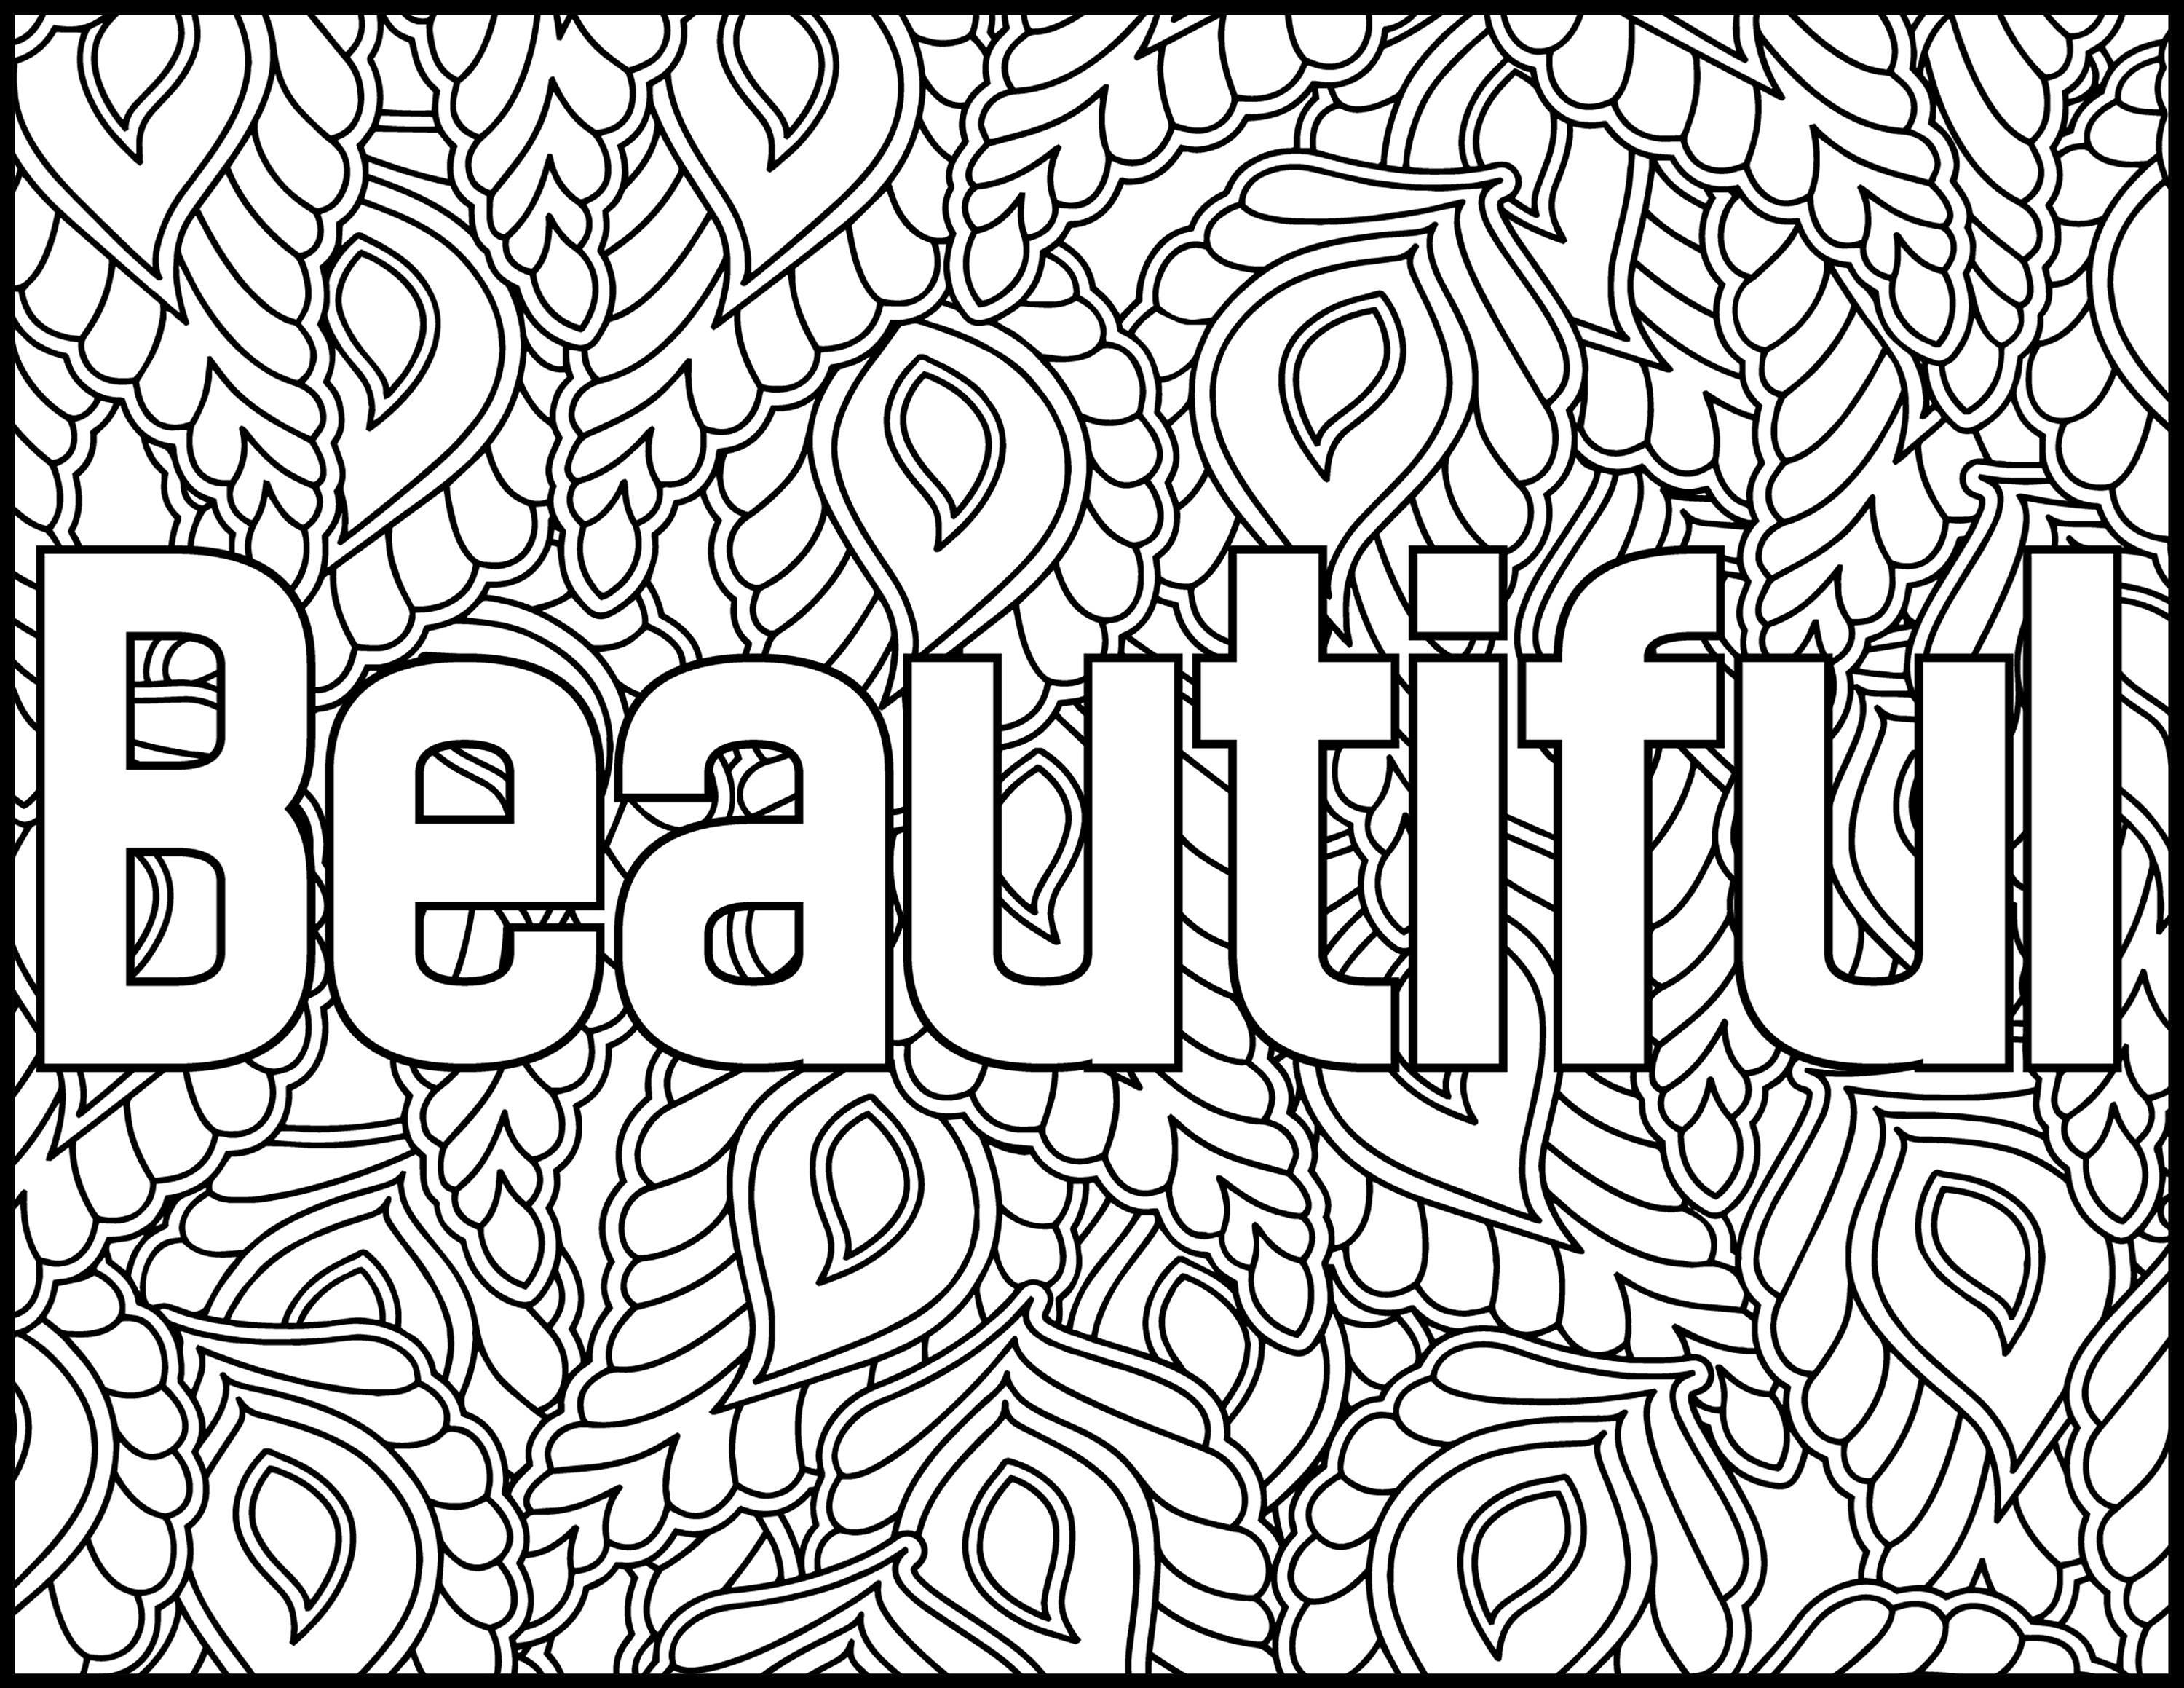 coloring page pdf - positive affirmations coloring pages for adults beautiful